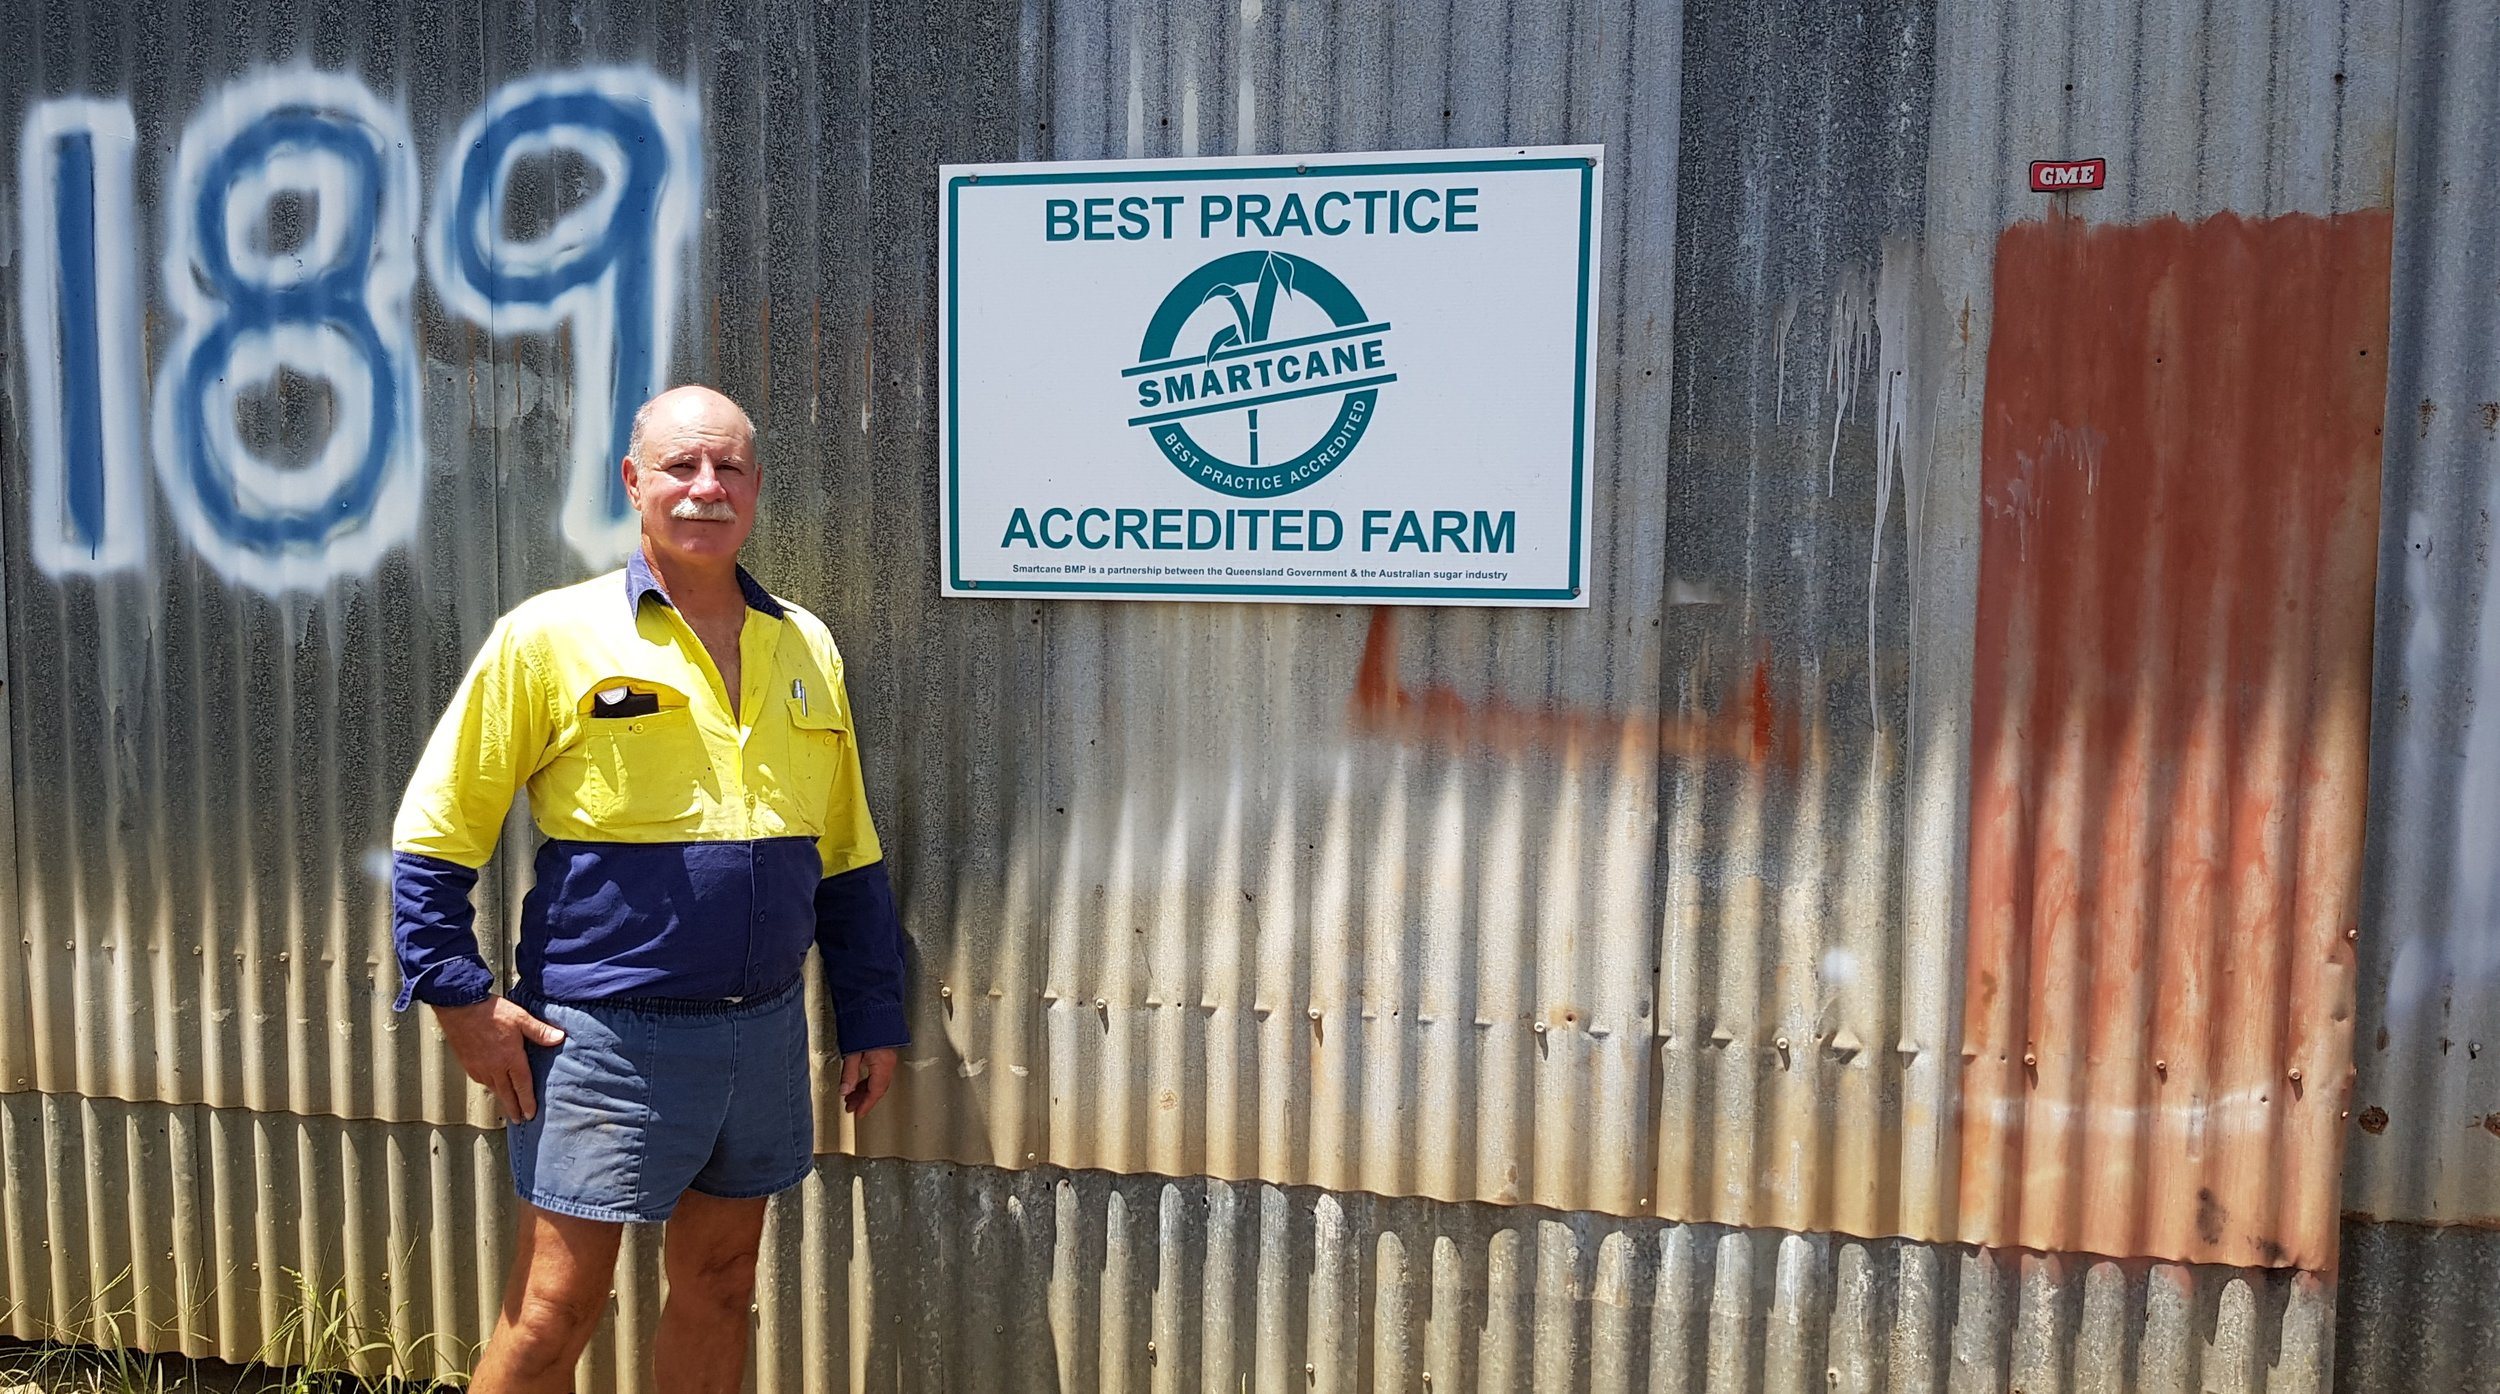 Babinda grower, Raymond Vicarioli, was one of the first growers in his district to become accredited in Smartcane BMP and was recognised as CANEGROWERS Sugarcane Grower of the Year in 2011